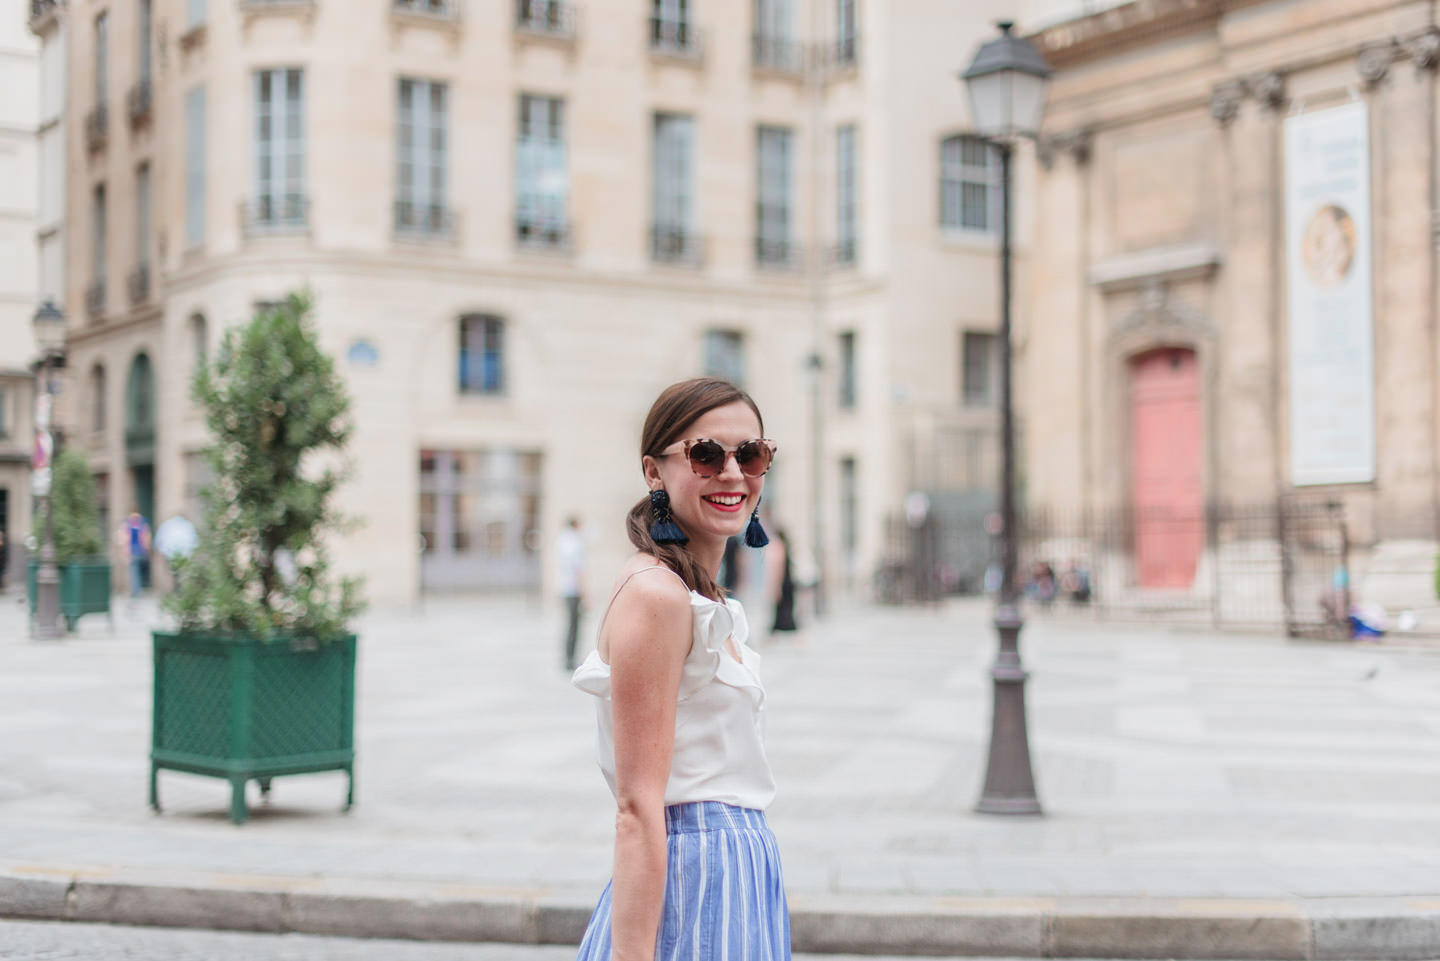 Blog-Mode-And-The-City-Looks-l-ete-en-jupe-longue-6